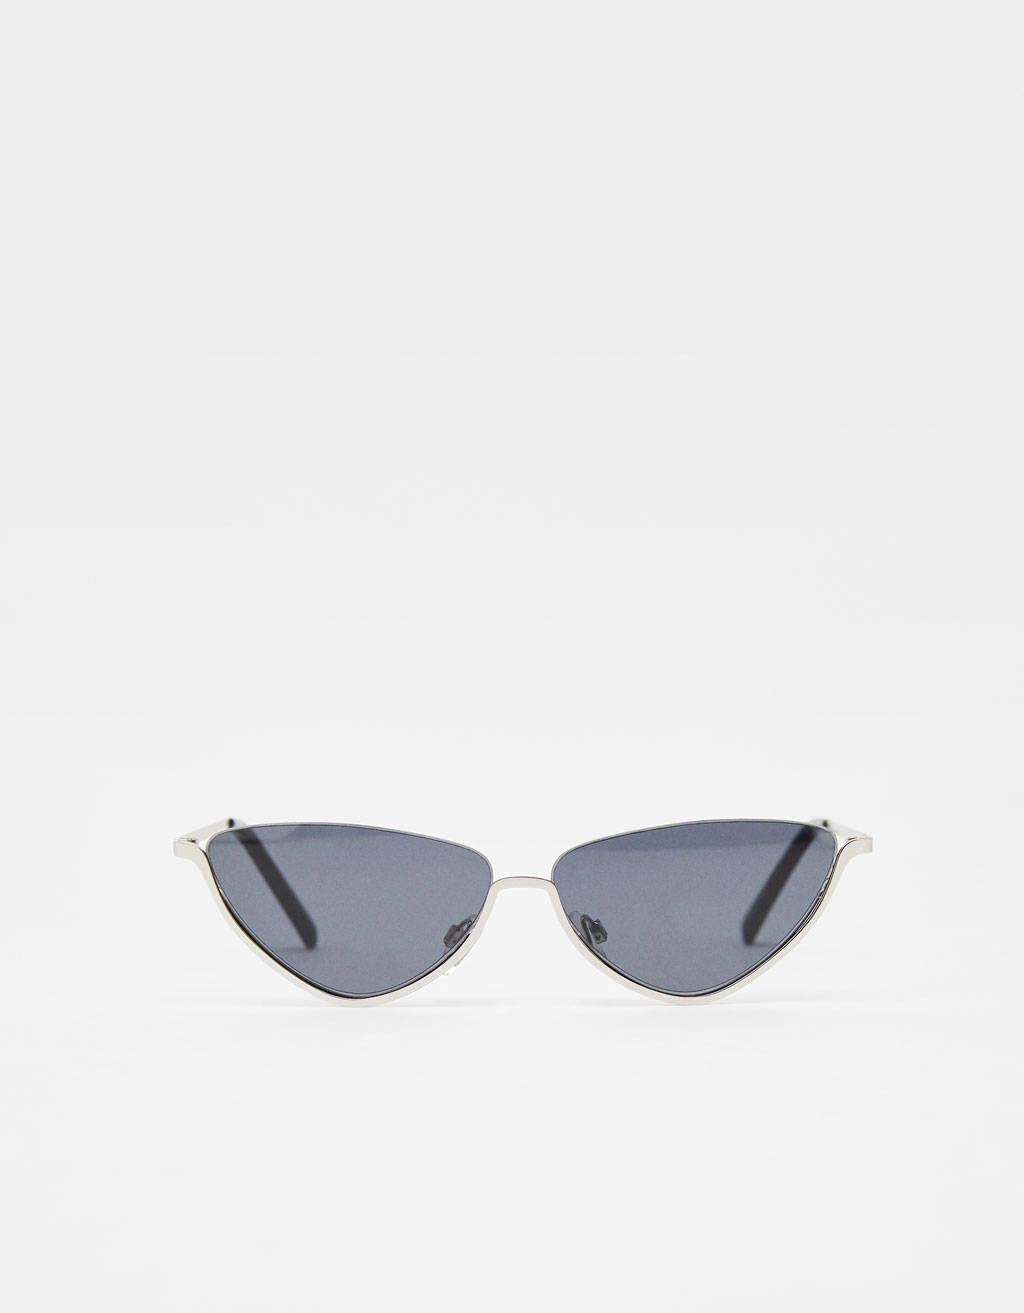 Half-frame Cat Eye sunglasses